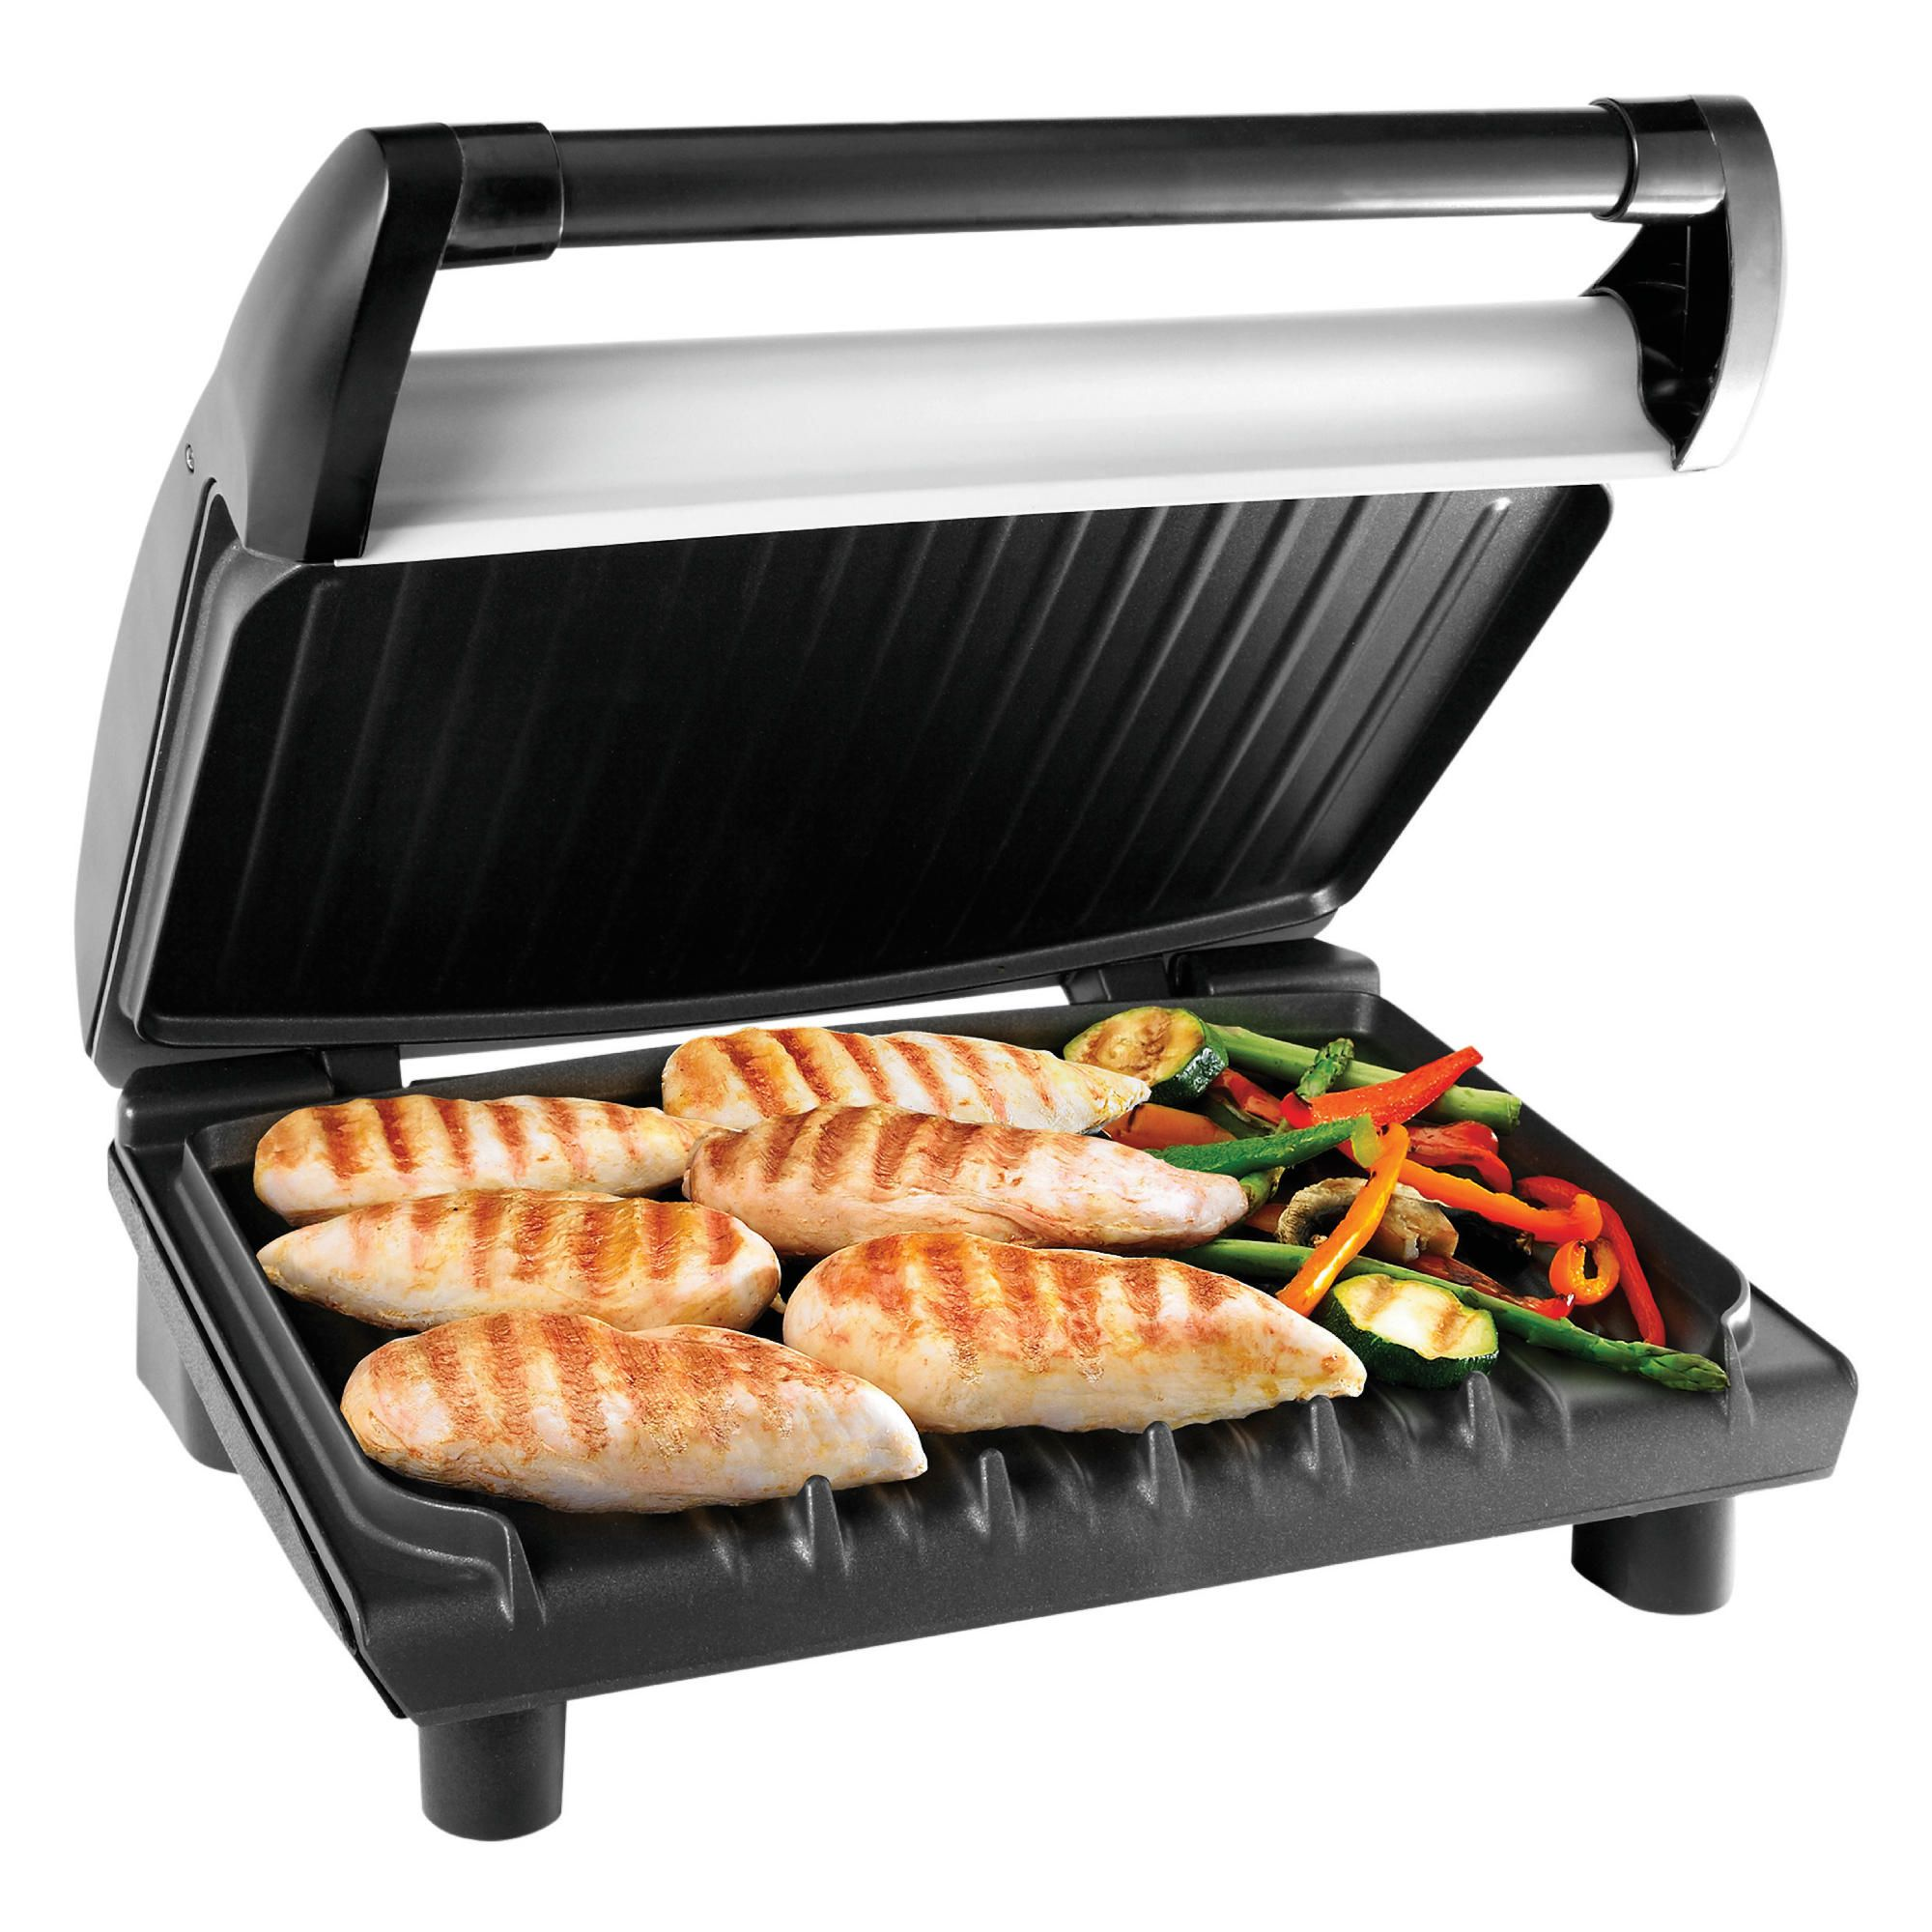 Grills in household appliances items one to twenty for George foreman grill fish